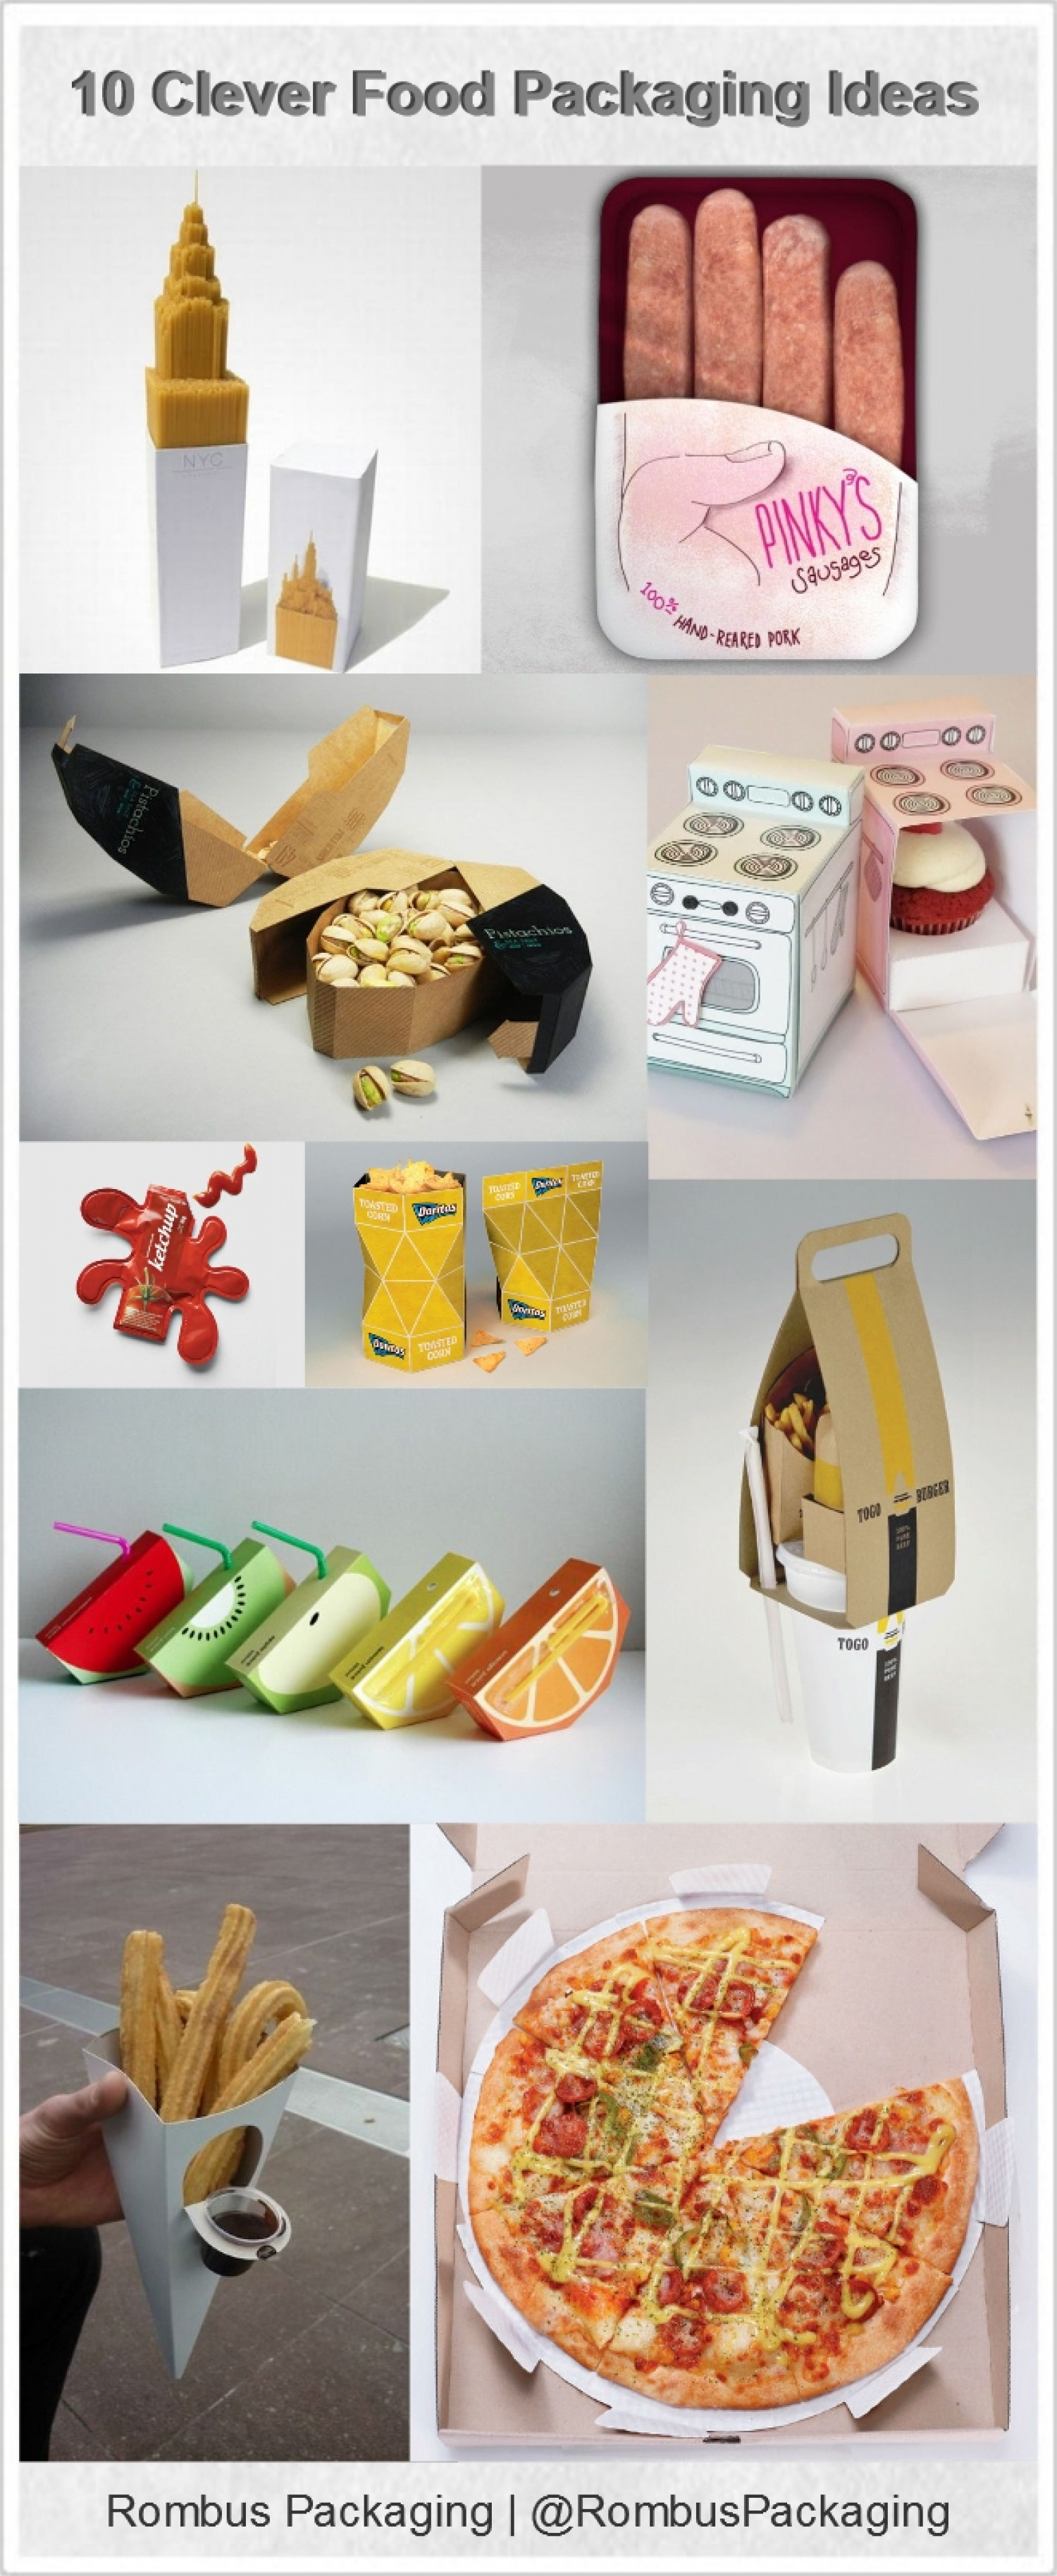 10 Clever Food Packaging Ideas Infographic